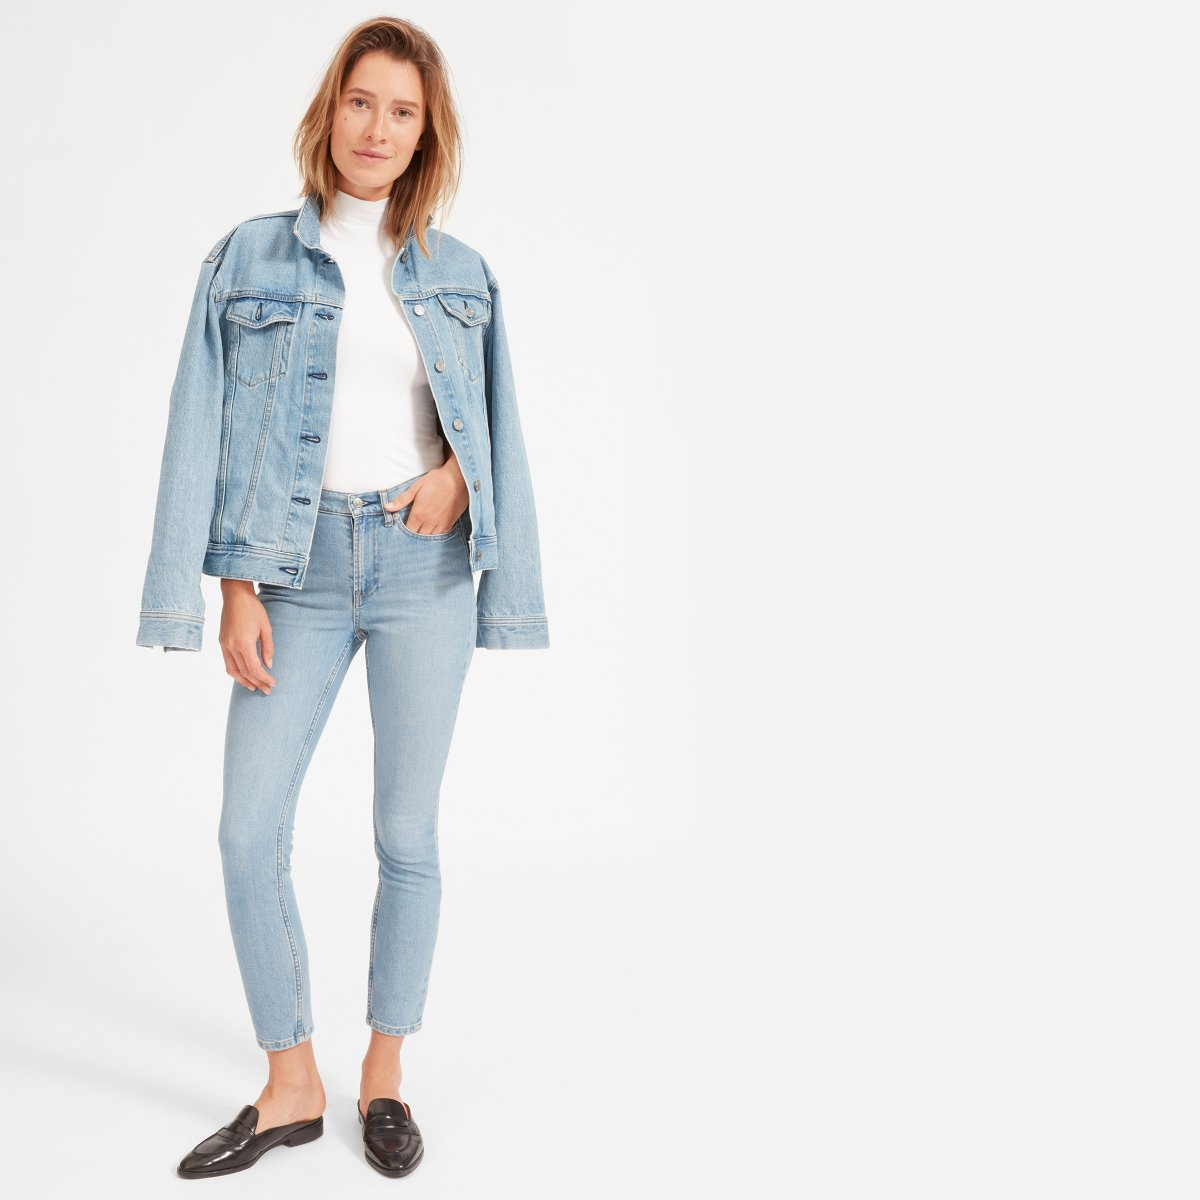 Everlane Choose What You Pay / High Rise Skinny Jean - Sunshine Style, A Florida Based Fashion Blog